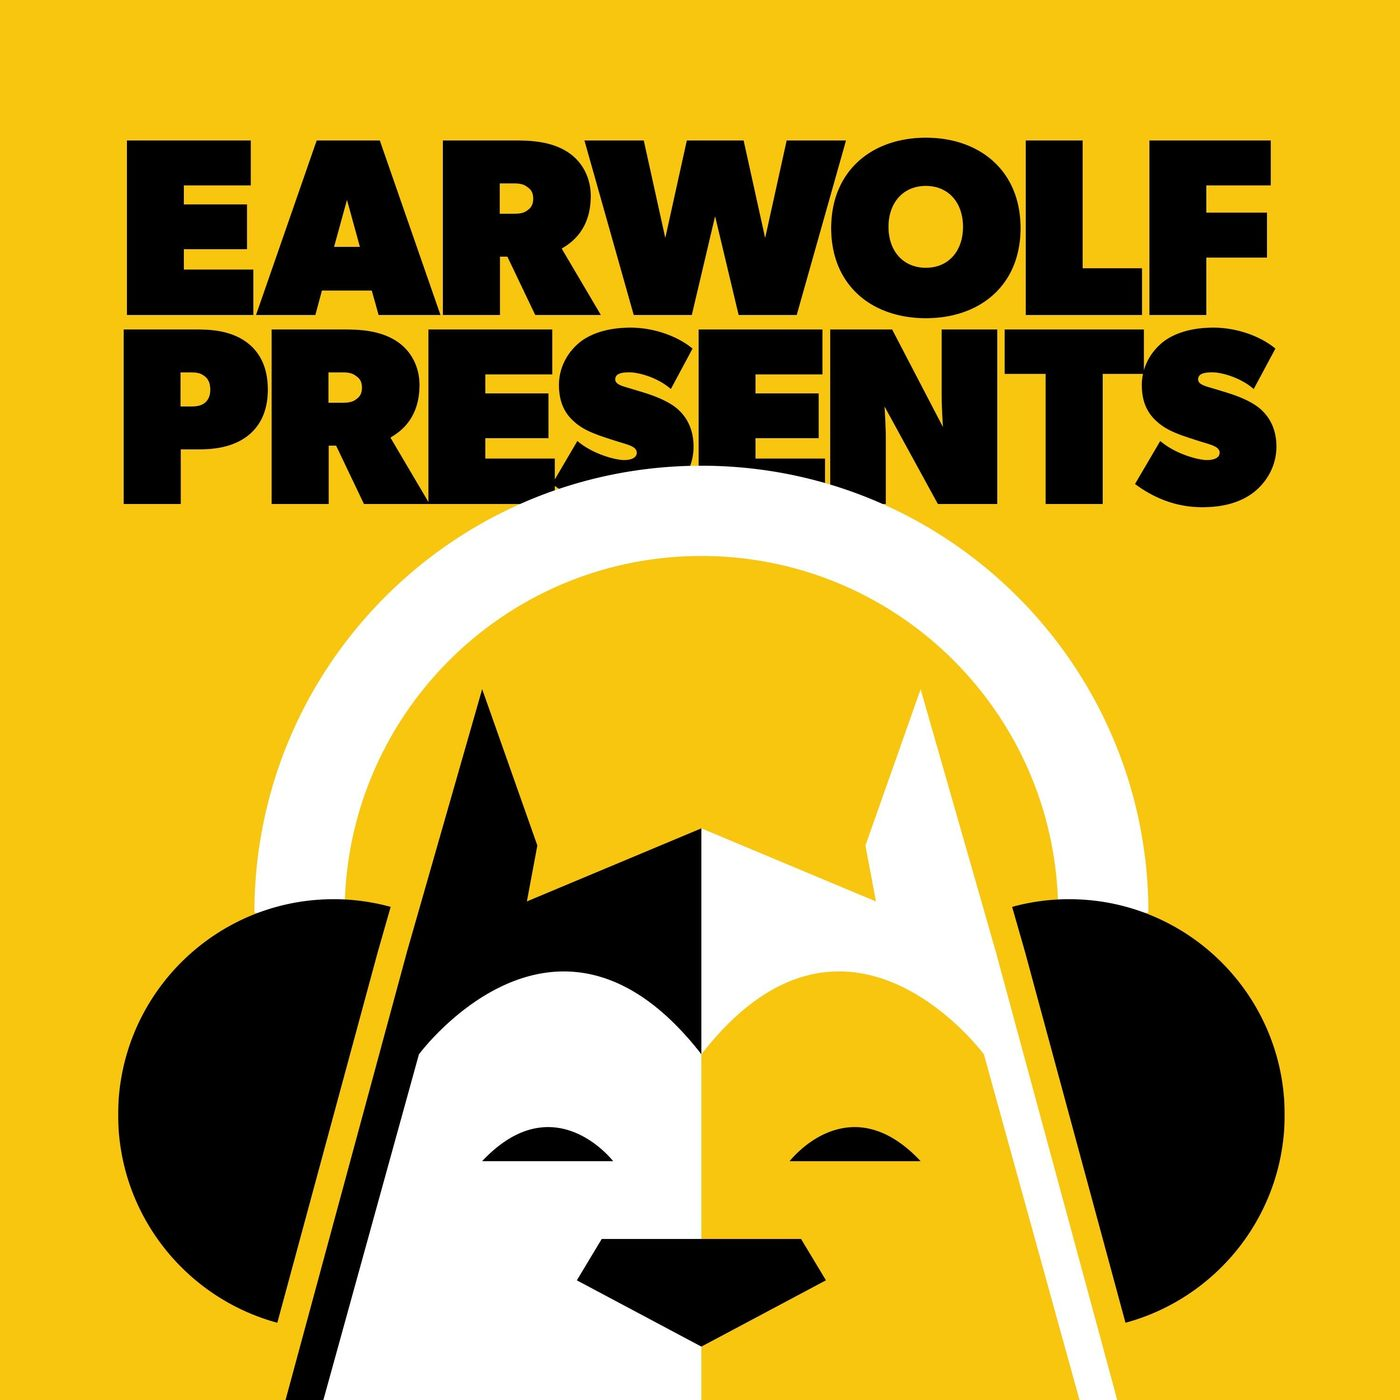 c388c7696349 Earwolf Presents by Earwolf on Apple Podcasts